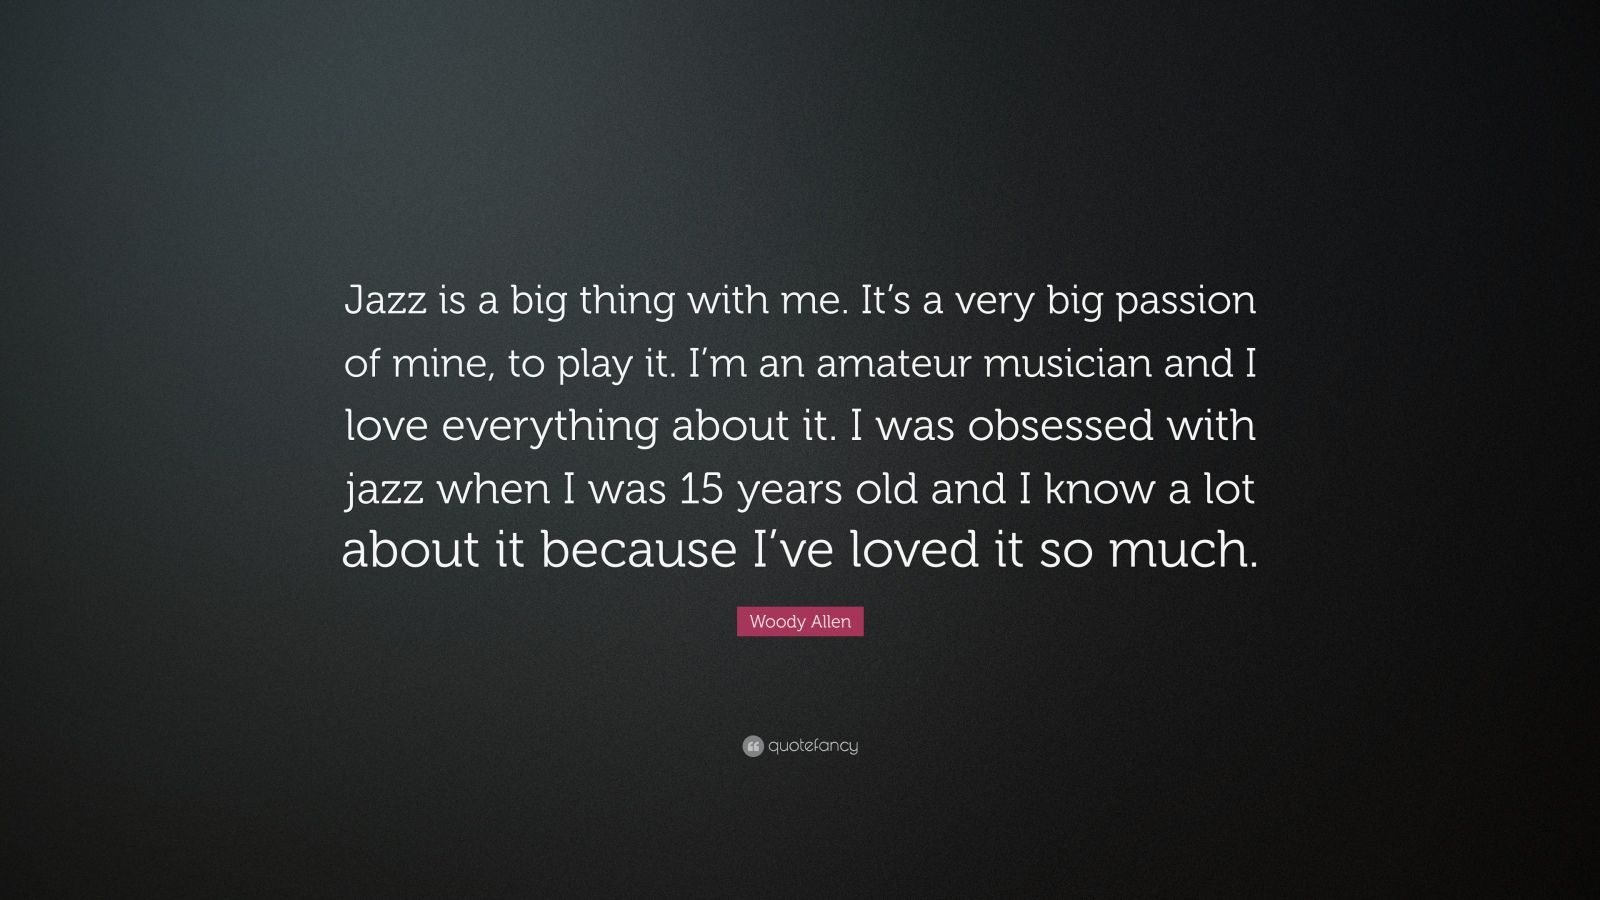 """Woody Allen Quote: """"Jazz is a big thing with me. It's a very big passion of mine, to play it. I'm an amateur musician and I love everything about it. I was obsessed with jazz when I was 15 years old and I know a lot about it because I've loved it so much."""""""